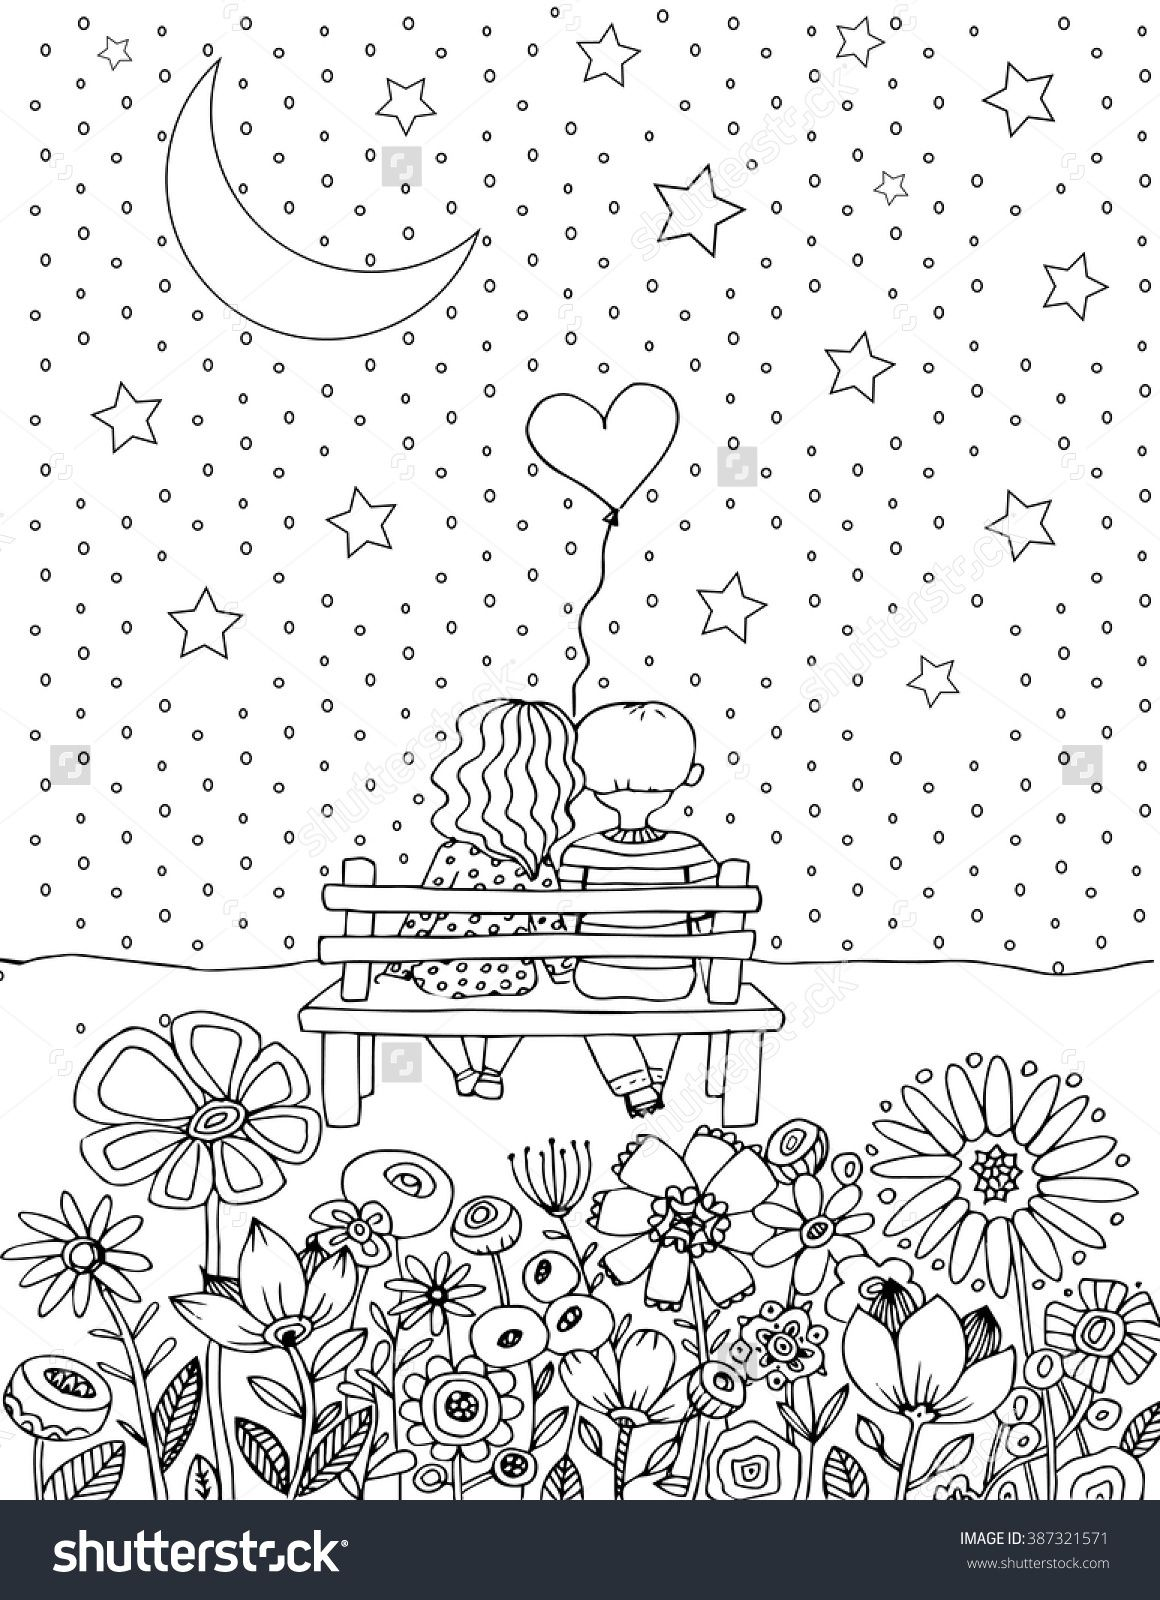 Love Vector Illustration Coloring Page